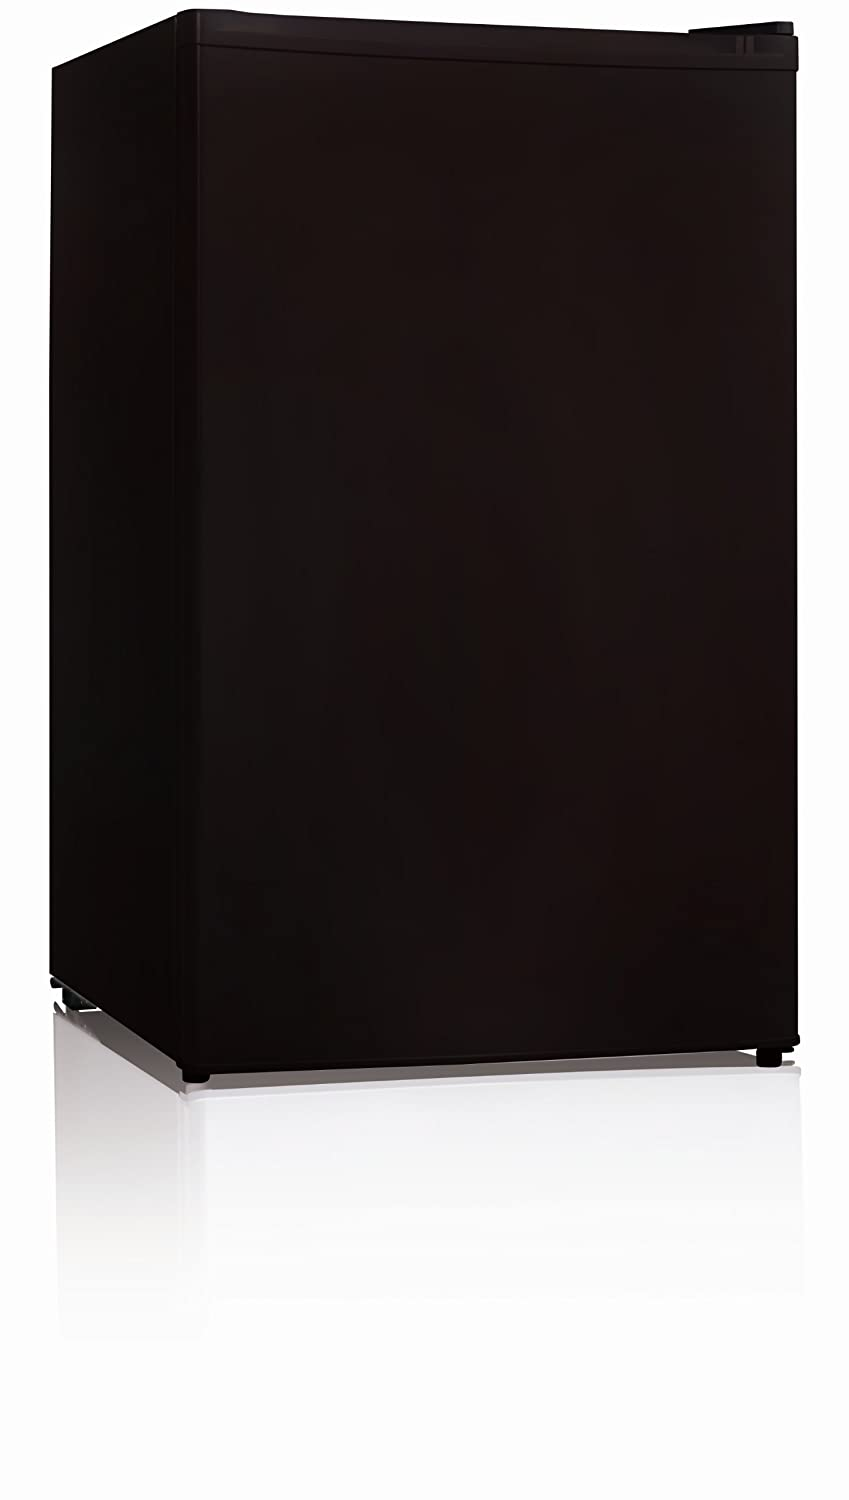 Midea WHS-109FB1 Compact Single Reversible Door Upright Freezer, 3.0 Cubic Feet, Black